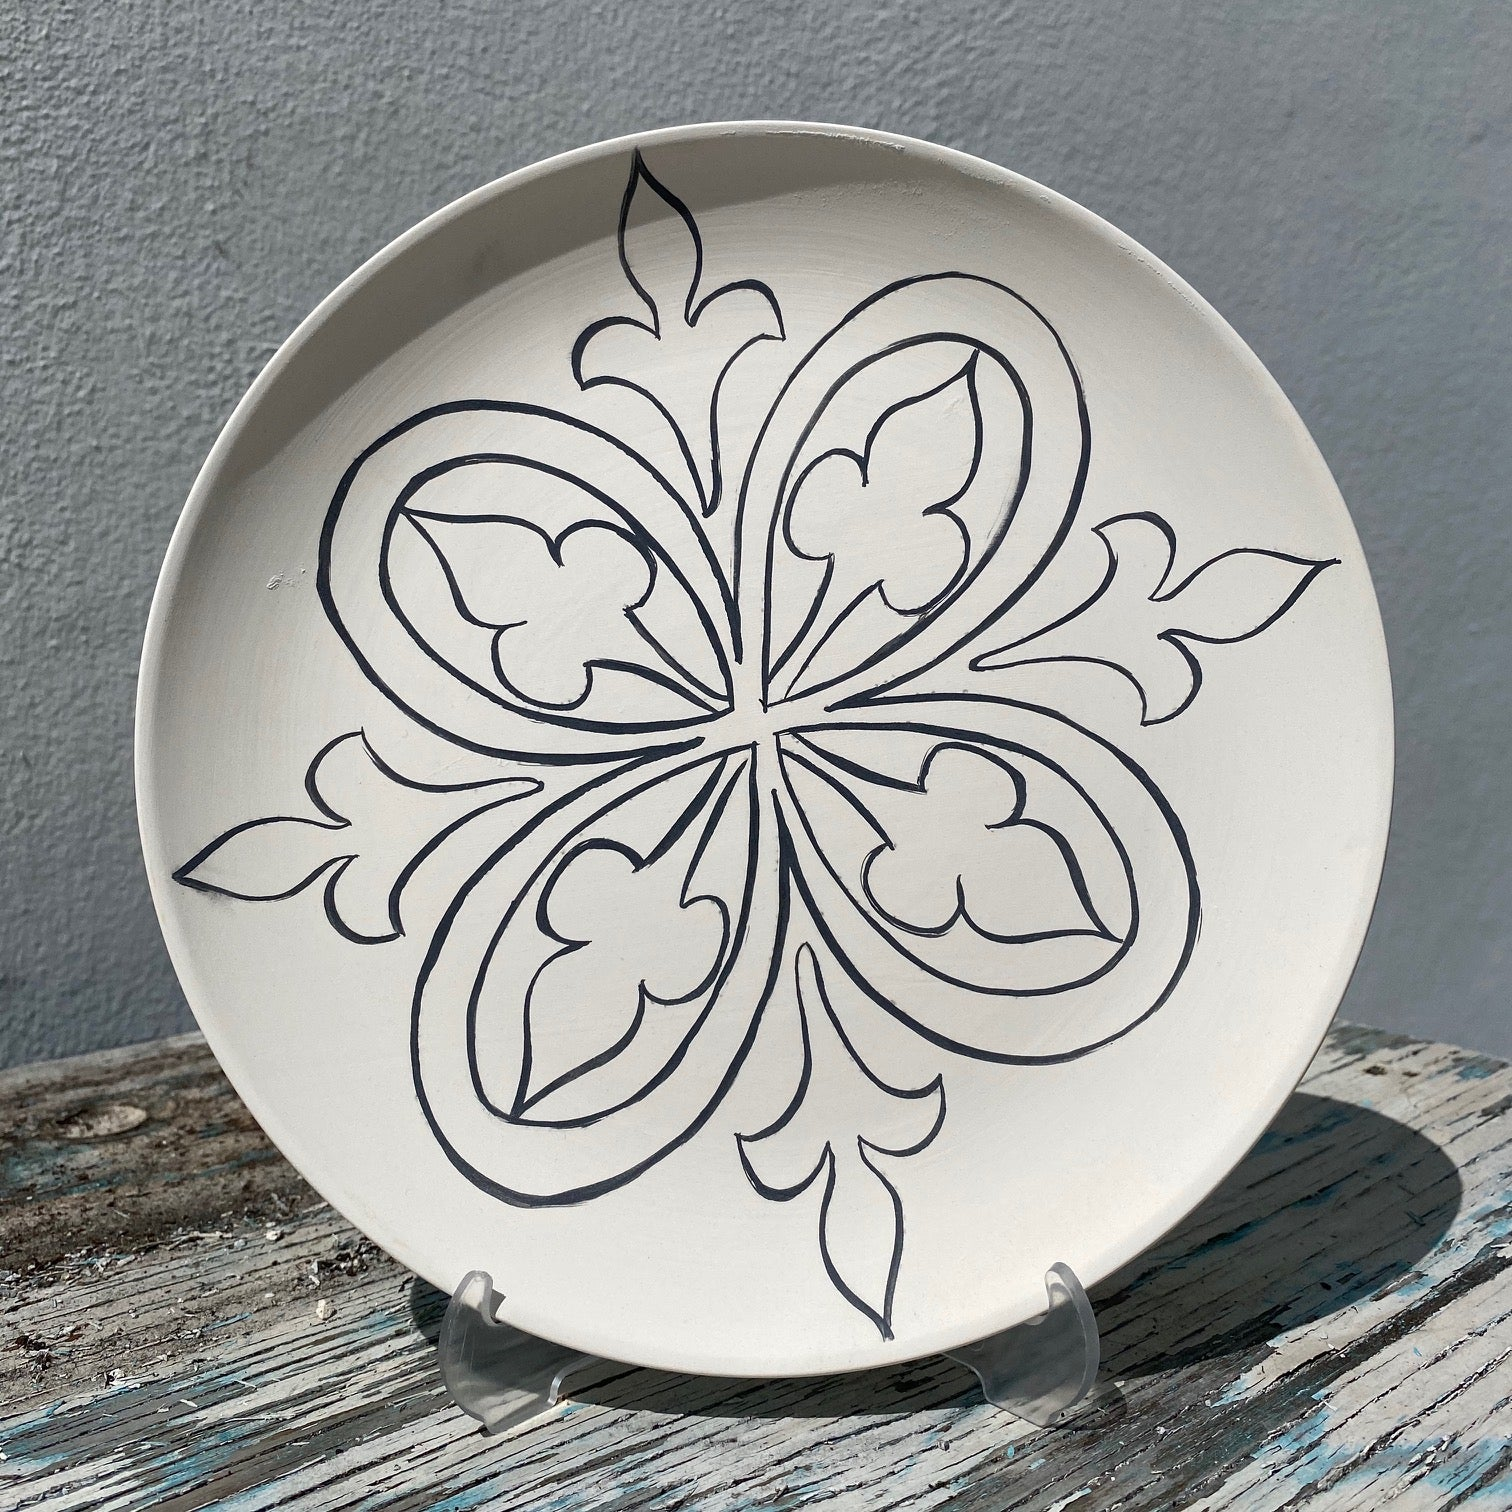 Plate with Design 4